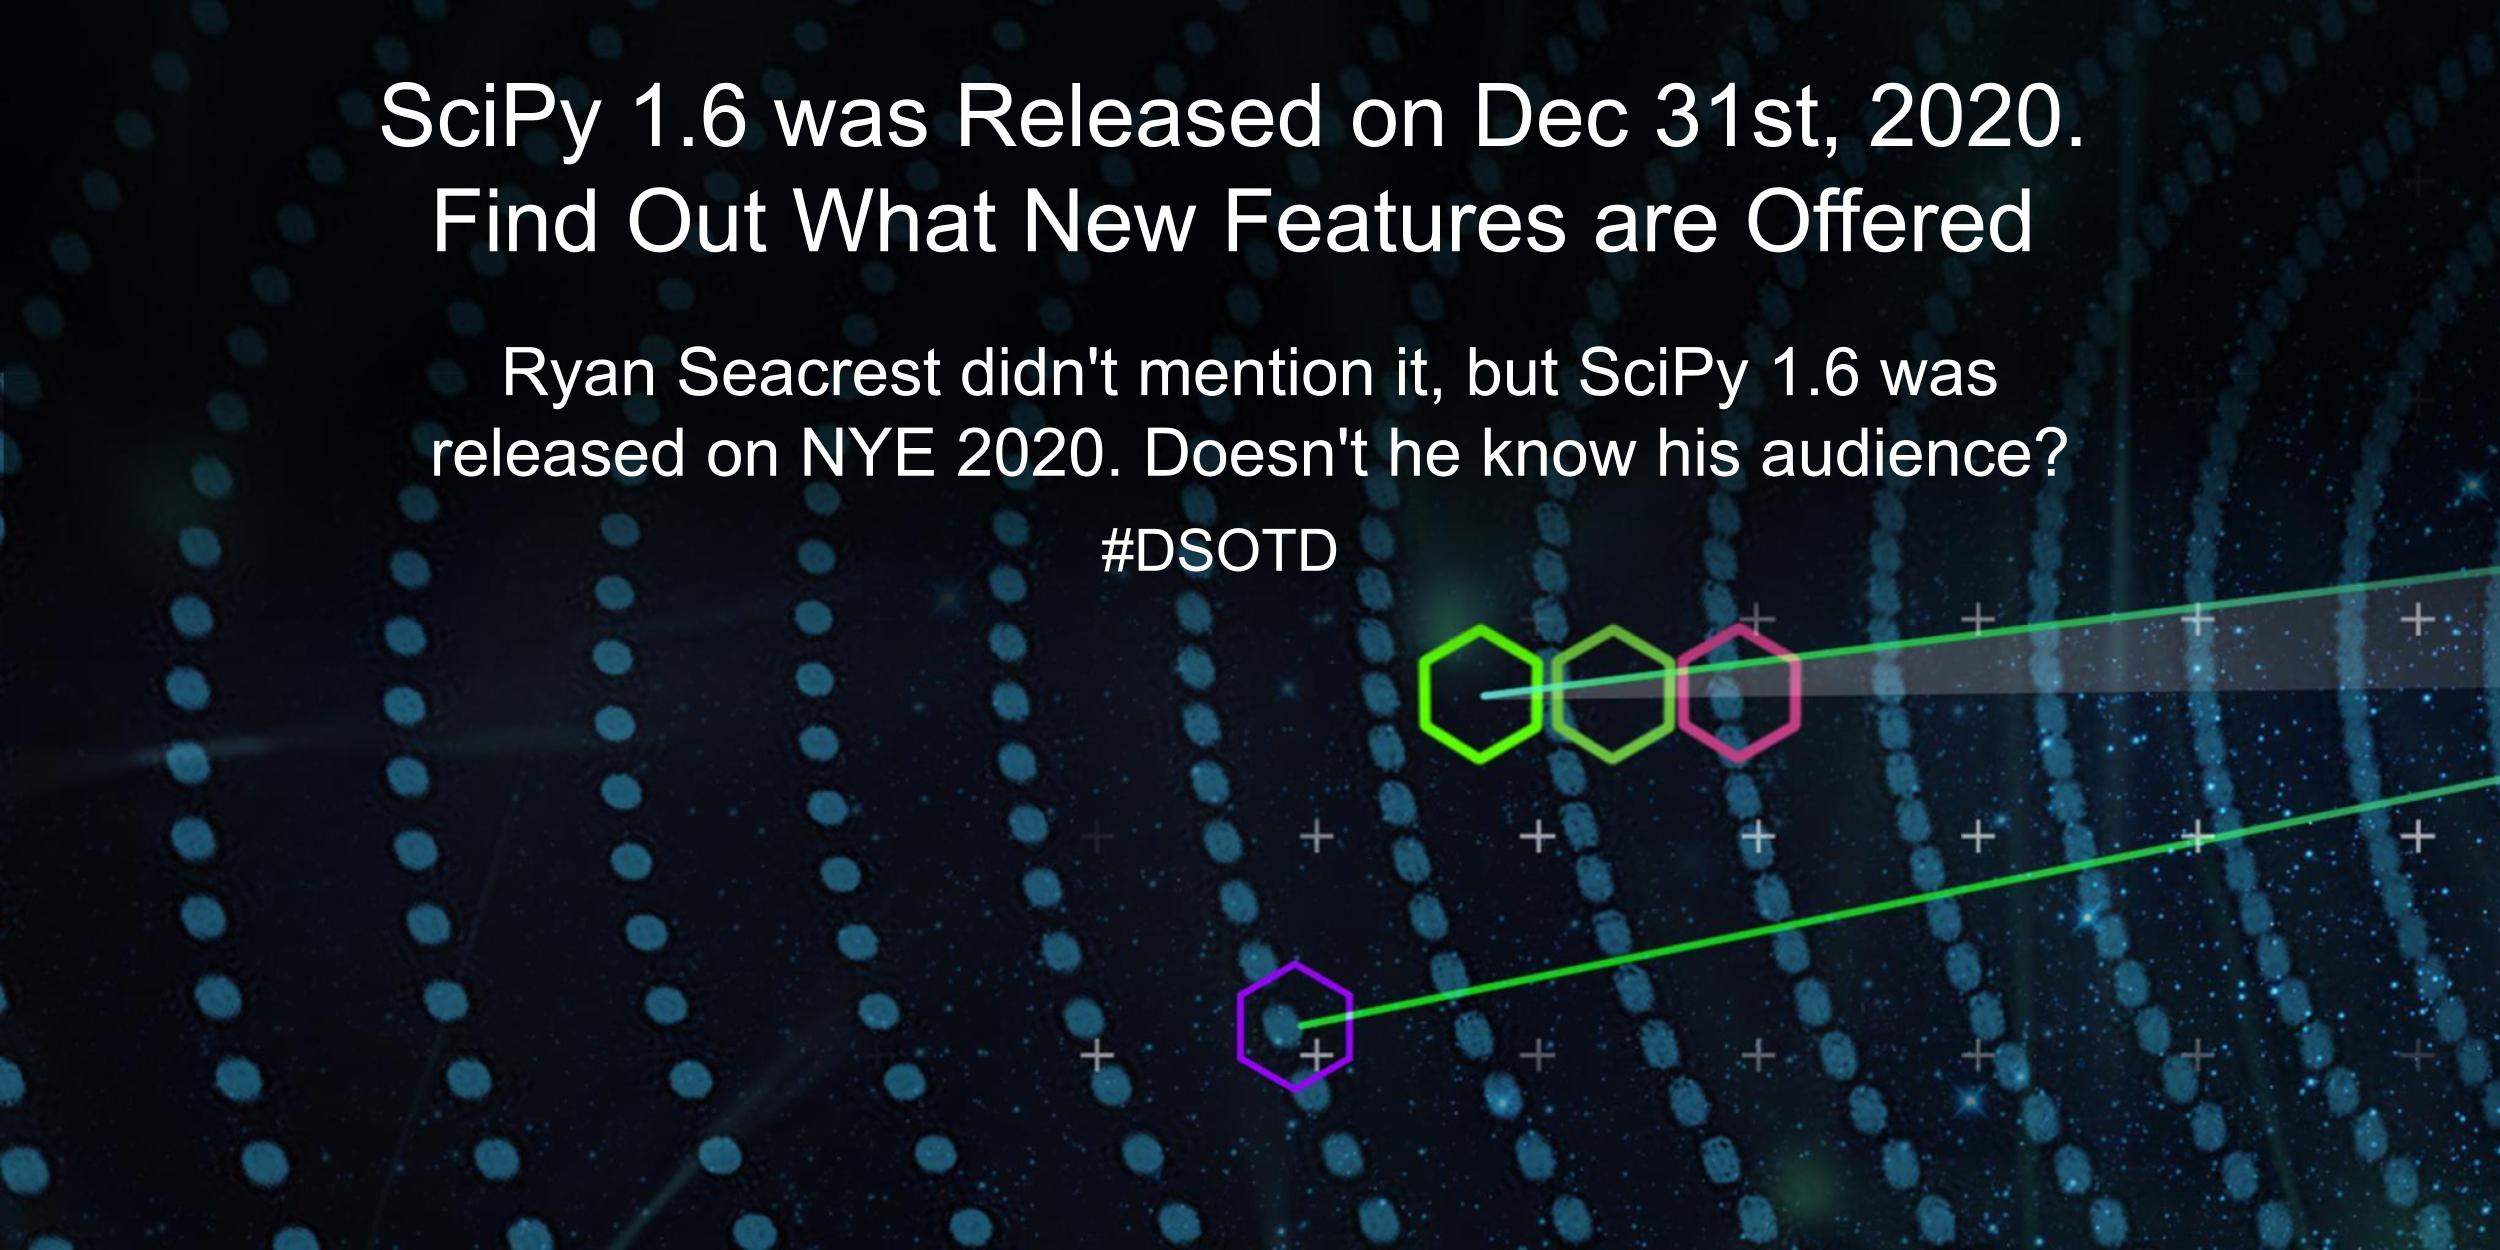 Ryan Seacreast didn't mention it, but ScyPy 1.6 was released on NYE 2020. Doesn't he know his audience?